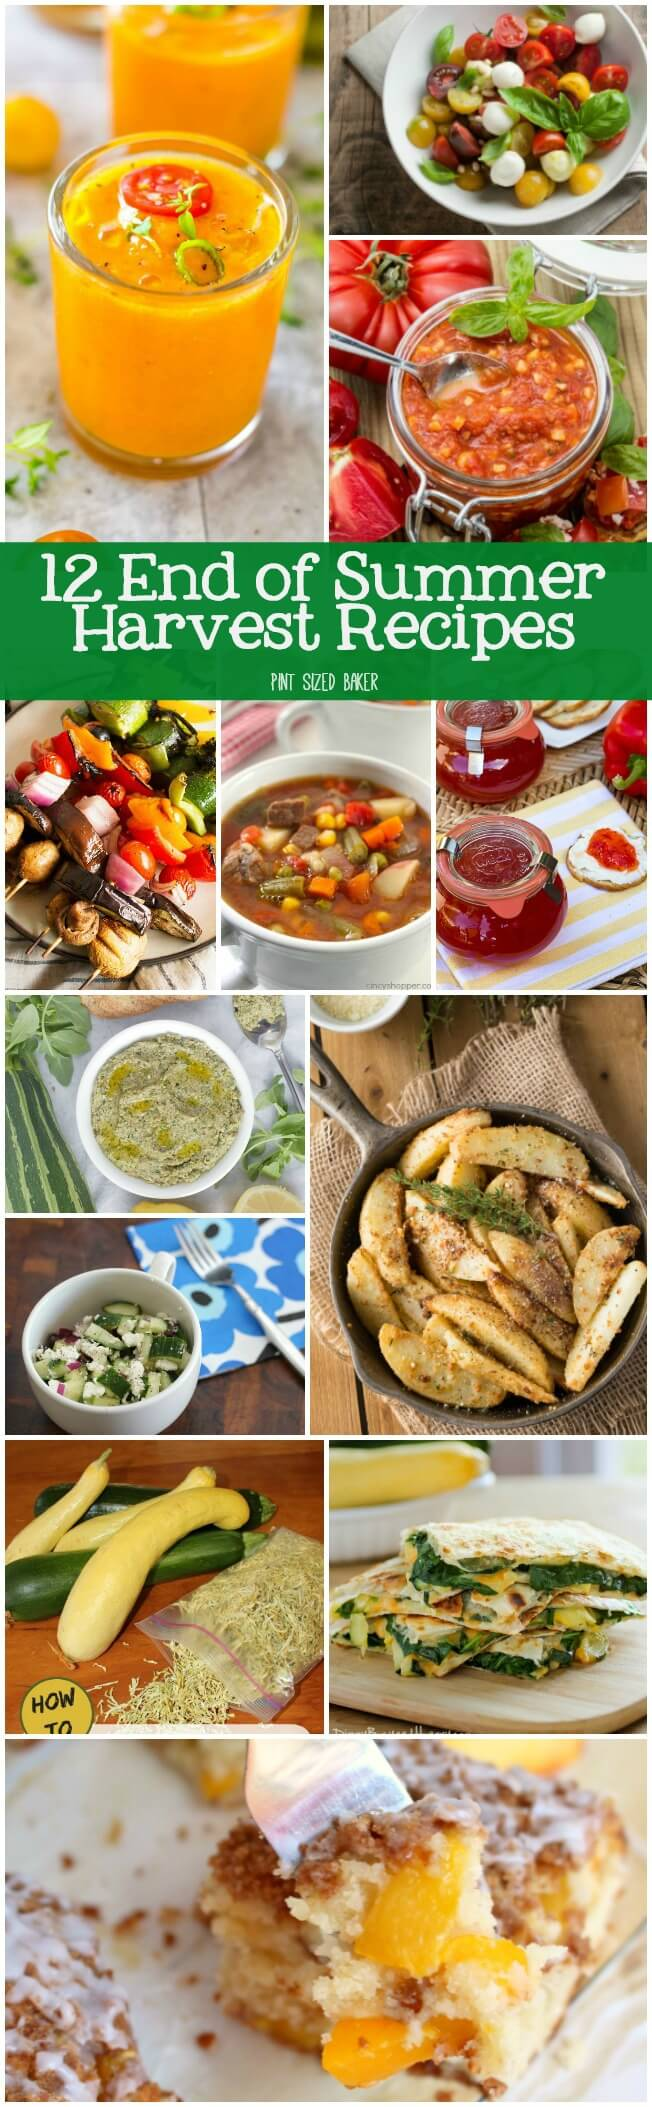 2 End of Summer Harvest Recipes that you can make to use up your tomatoes, zucchini, basil, squash, and more. Get in the kitchen with your seasonal veggies and make a great dish for your hungry family.